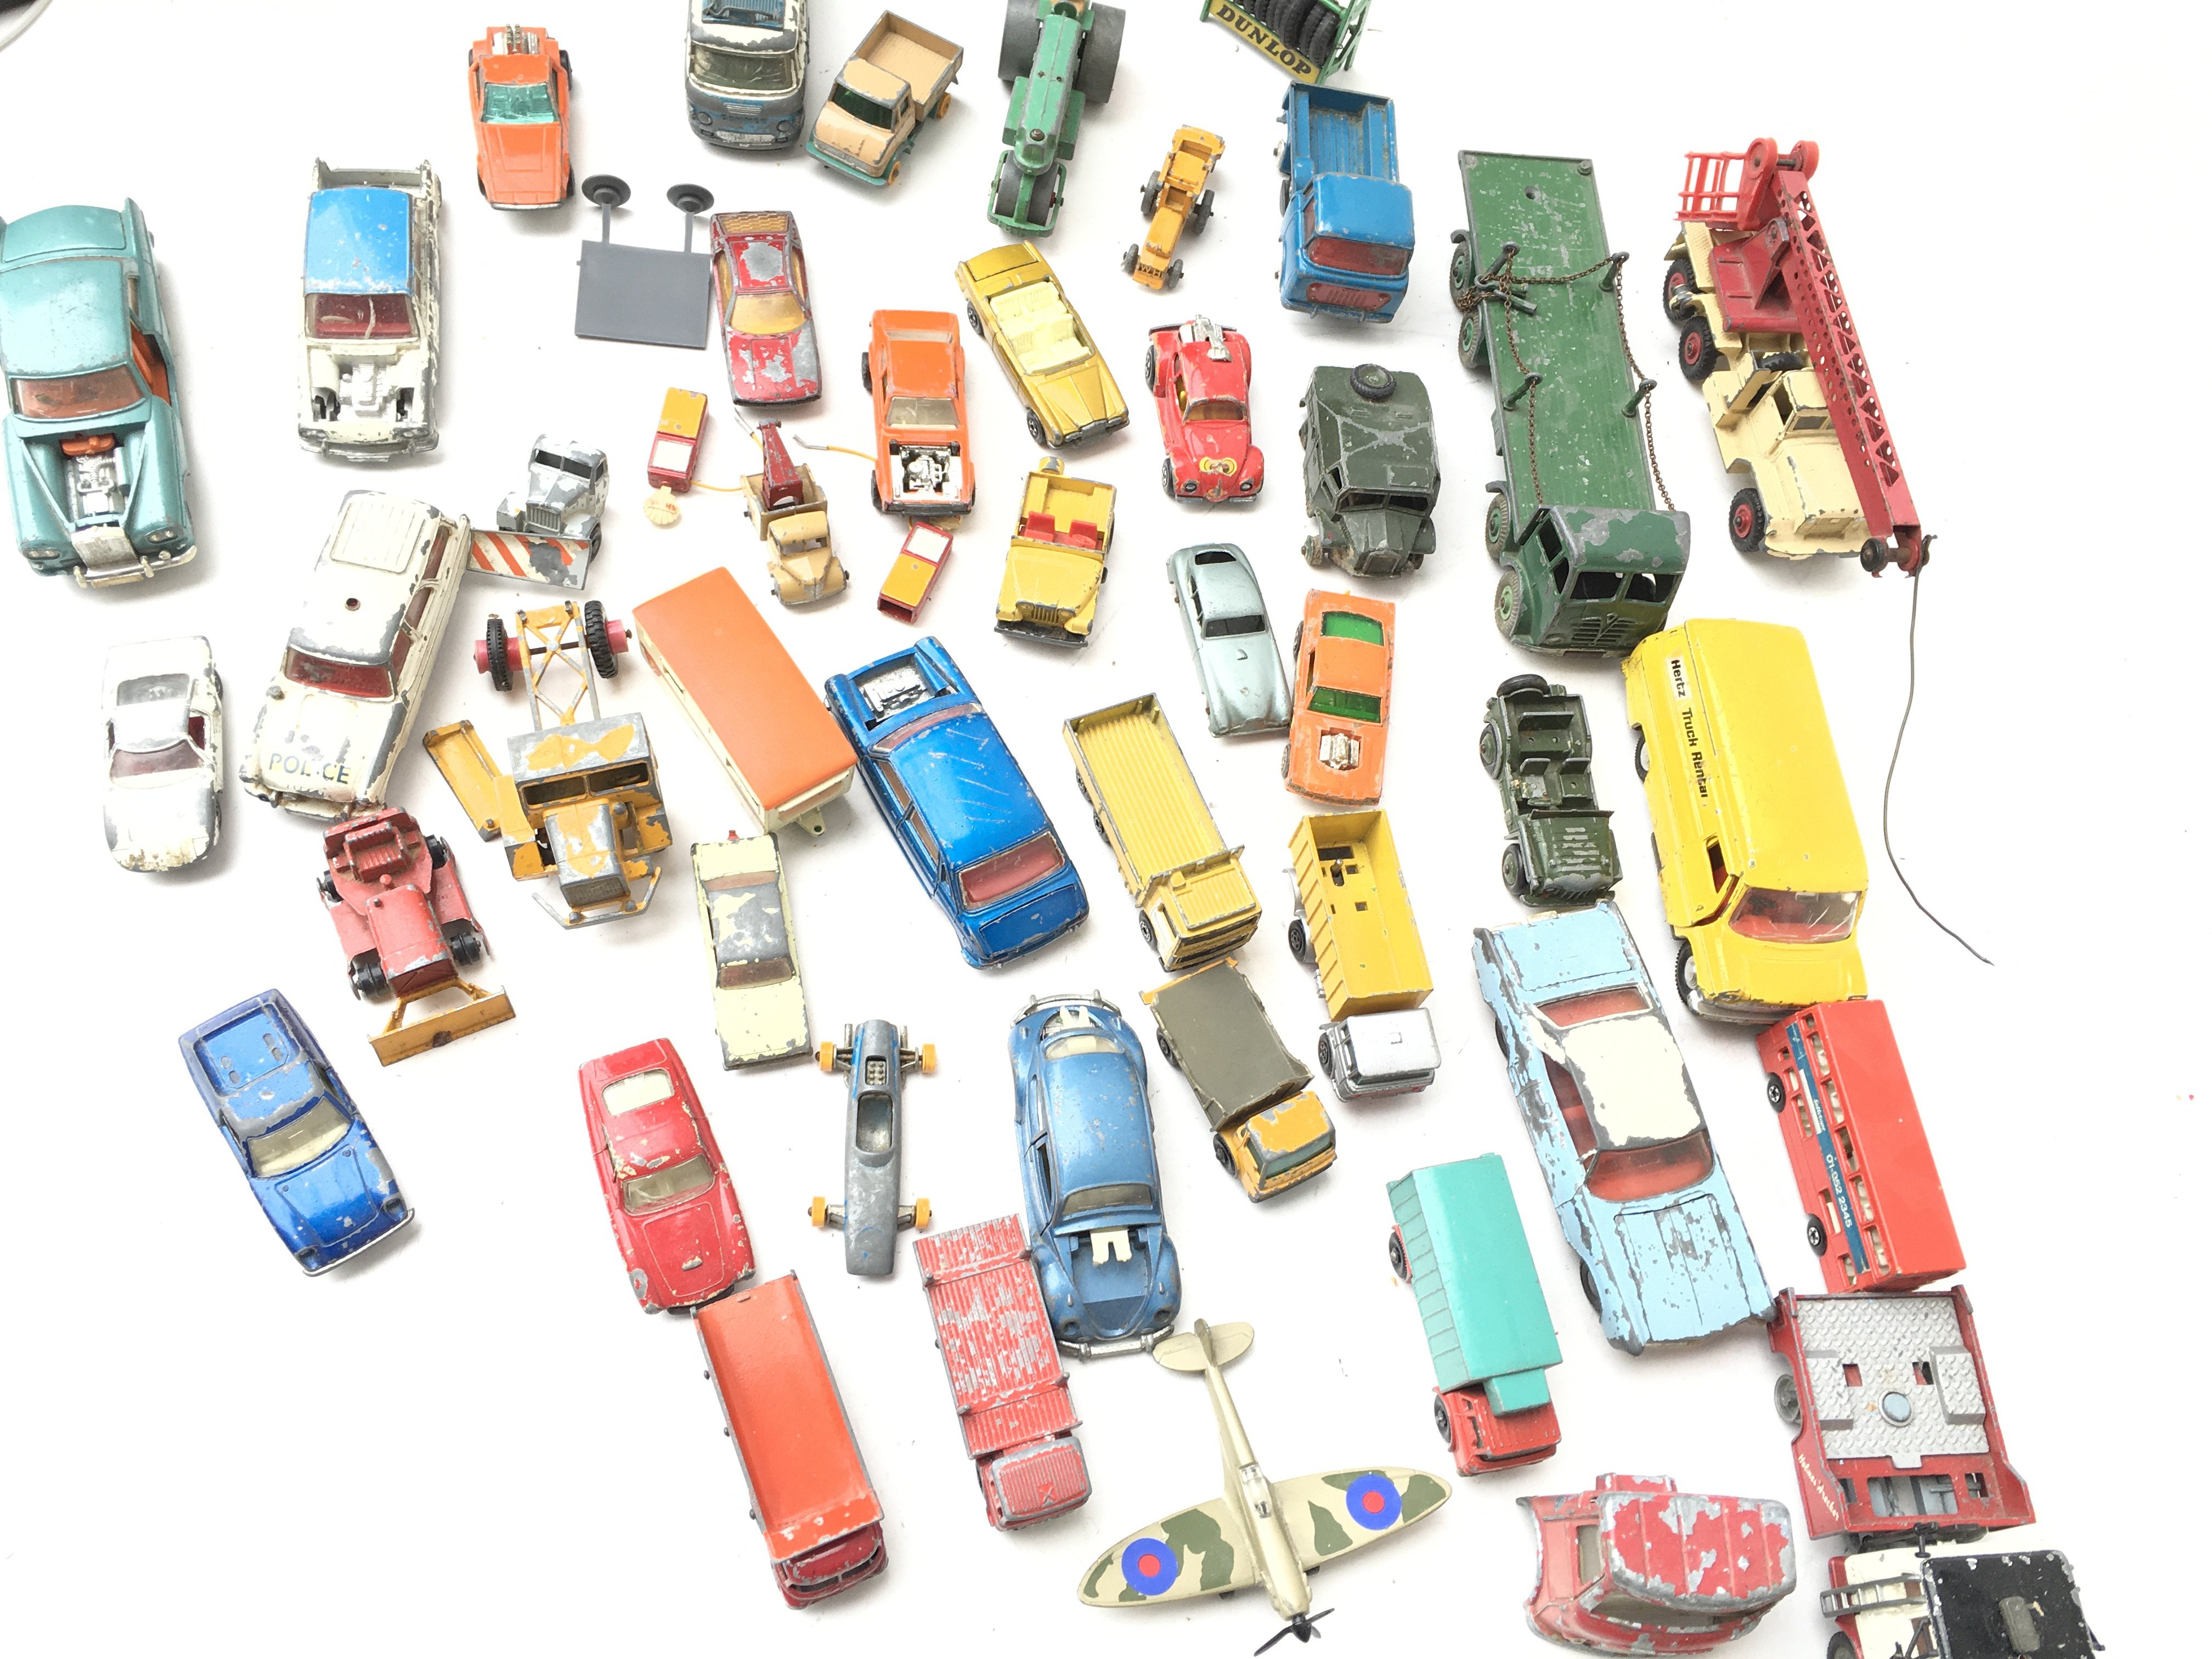 A Box Containing A Collection of Playworn Vehicles